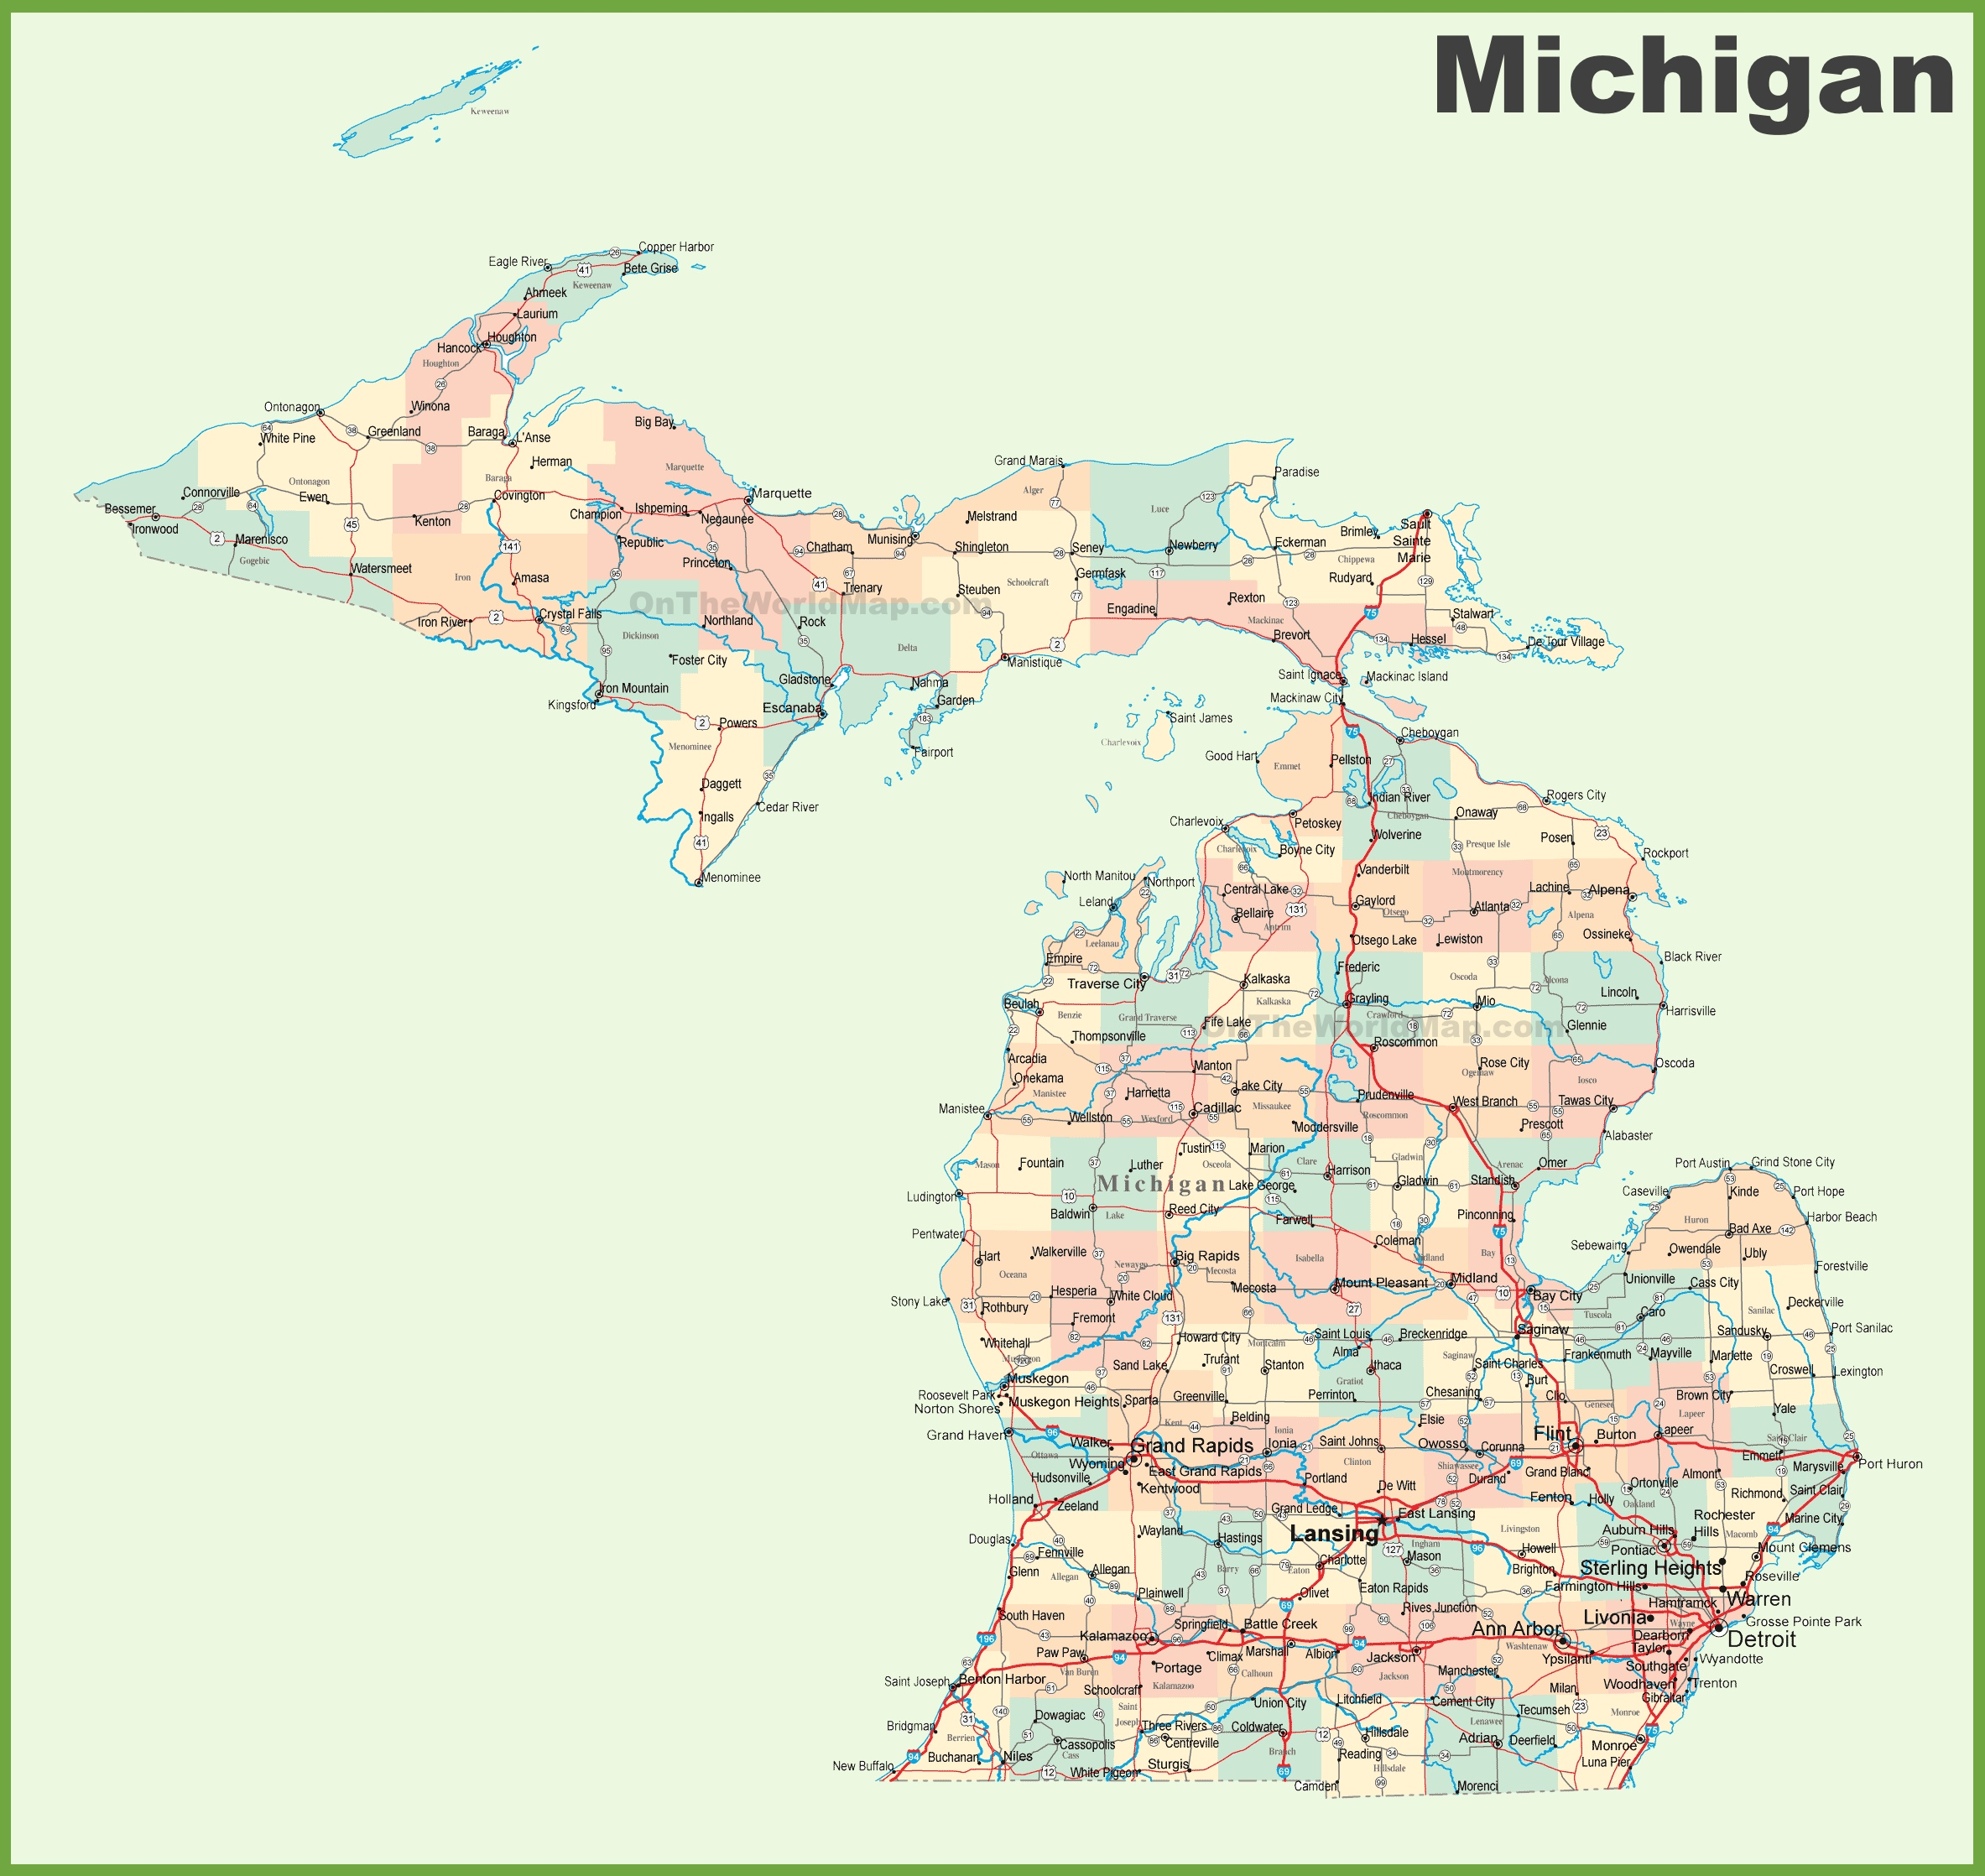 Road map of Michigan with cities Michigan Map Of Cities on map of wisconsin and minnesota, map of michigan states, map of cass city michigan, map of clarkston michigan, map of lansing michigan, map of michigan counties, map of central michigan, map of indiana and michigan, map of michigan highways, upper michigan map cities, map of ohio, map of south east michigan, map of michigan showing canton, map of michigan school districts, map of detroit, map of u p michigan, map of lake michigan, map of westland michigan, map of hudsonville michigan, map of jackson michigan,